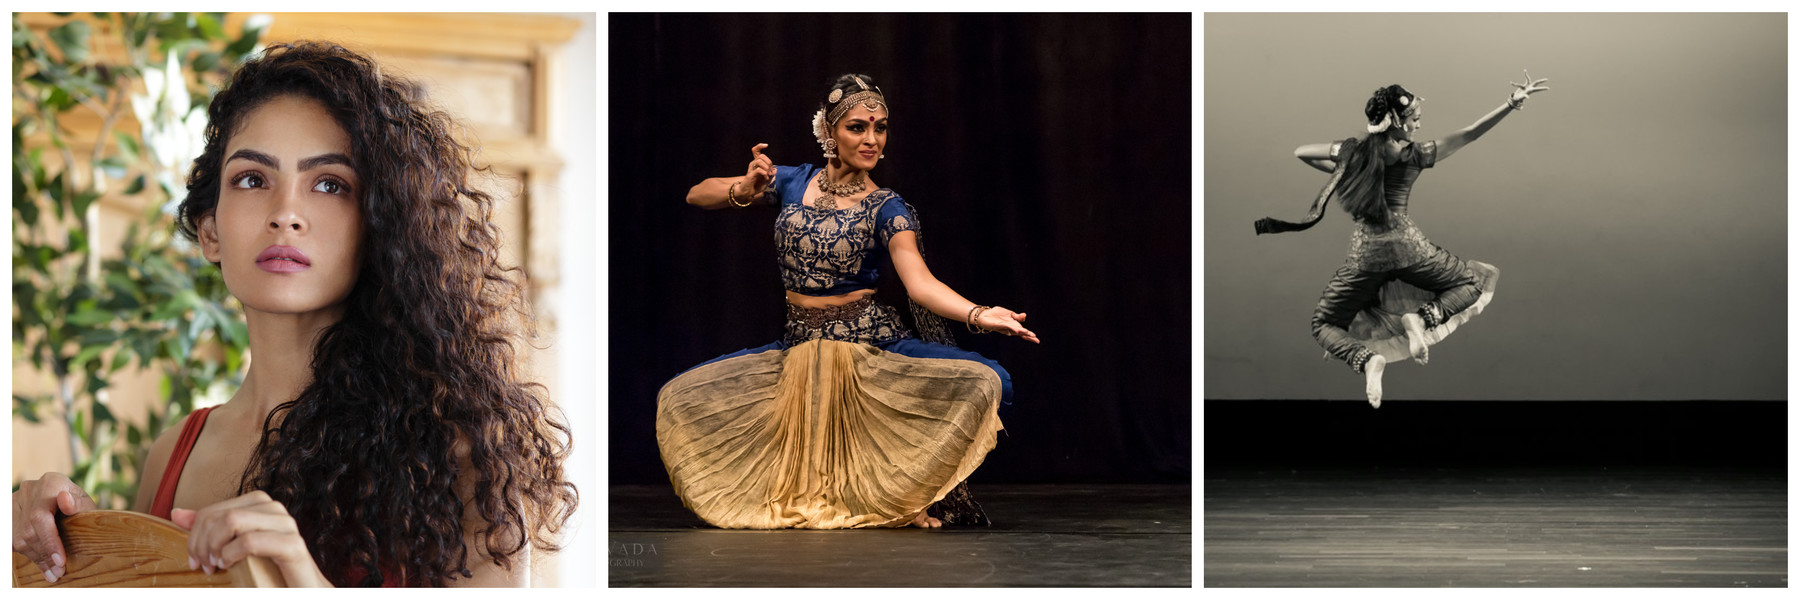 Rukmini Vijayakumar - waltzing every step of her way